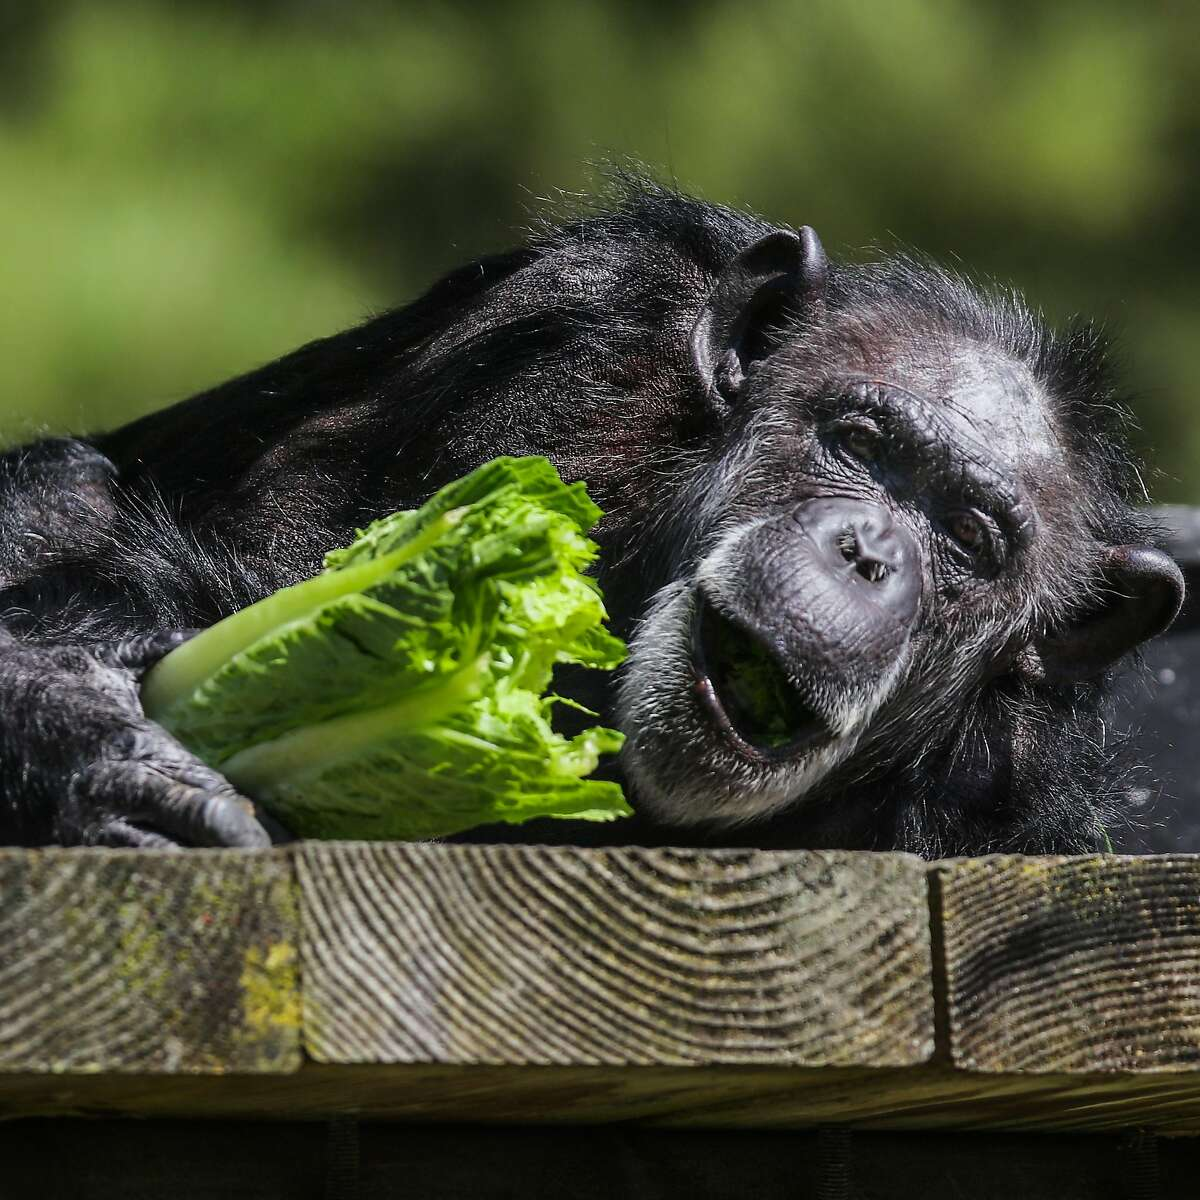 Chimpanzee Maggie snacks on salad in her enclosure at the San Francisco Zoo, in San Francisco, California, on Friday, April 22, 2016.